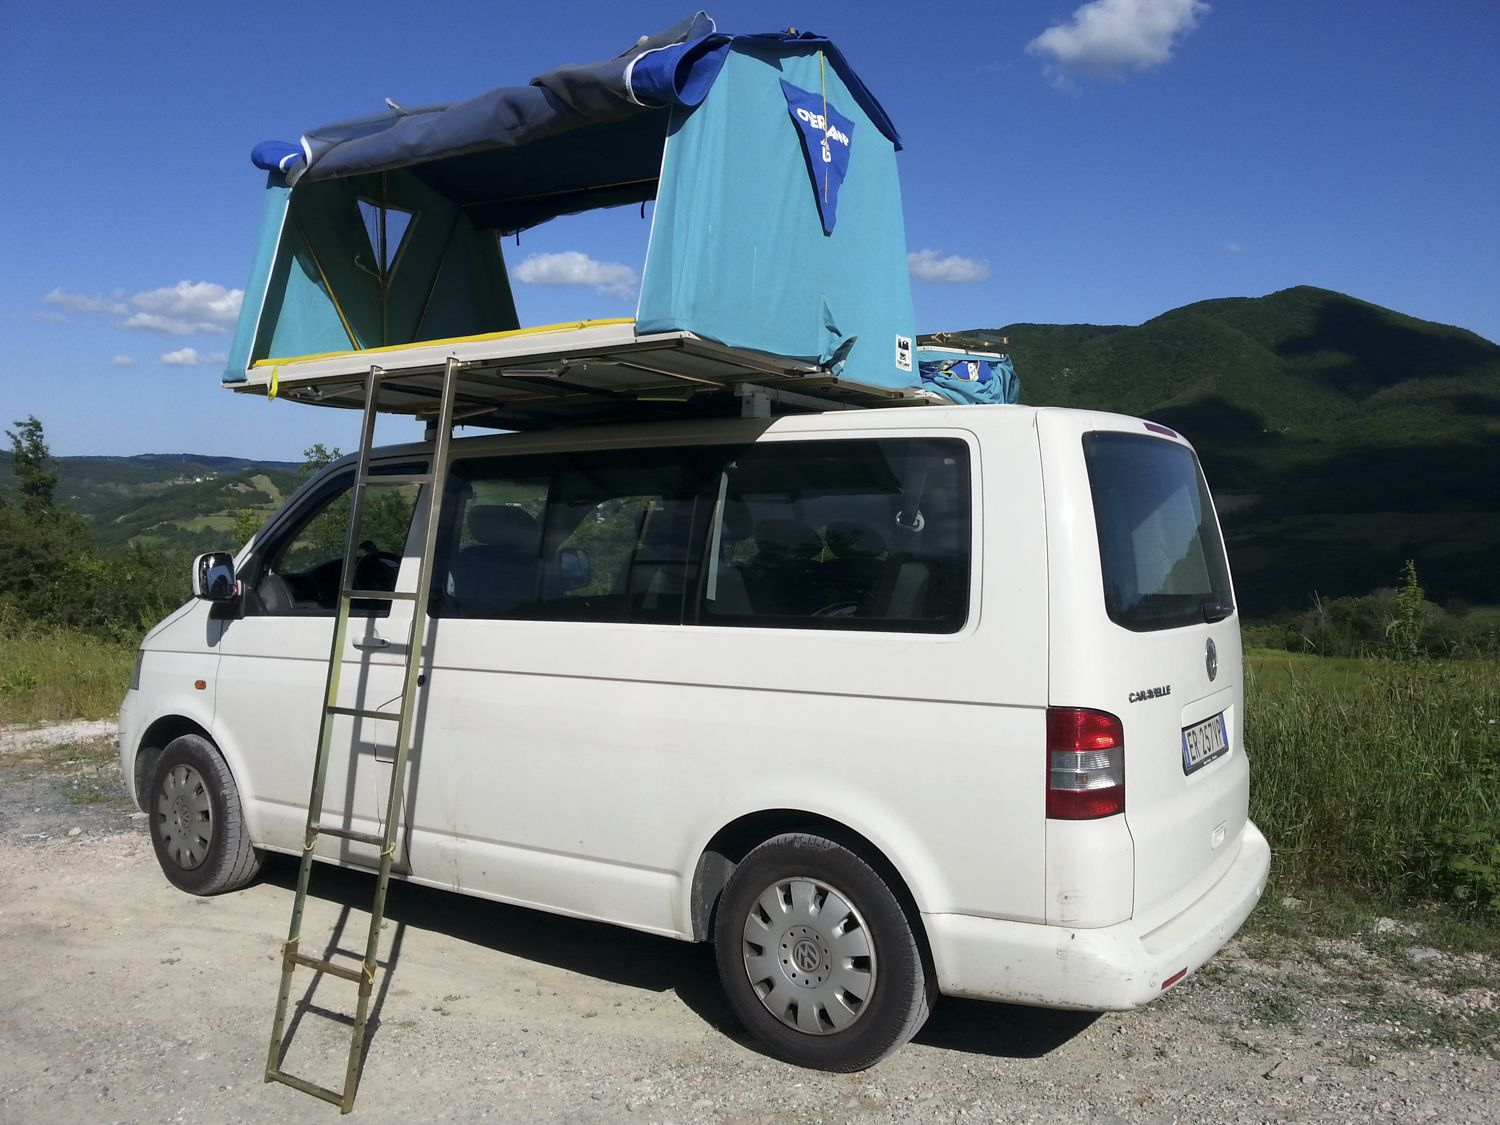 vw t5 overcamp tenda da tetto roof tent maggiolina aircamping overcamp pinterest vw. Black Bedroom Furniture Sets. Home Design Ideas